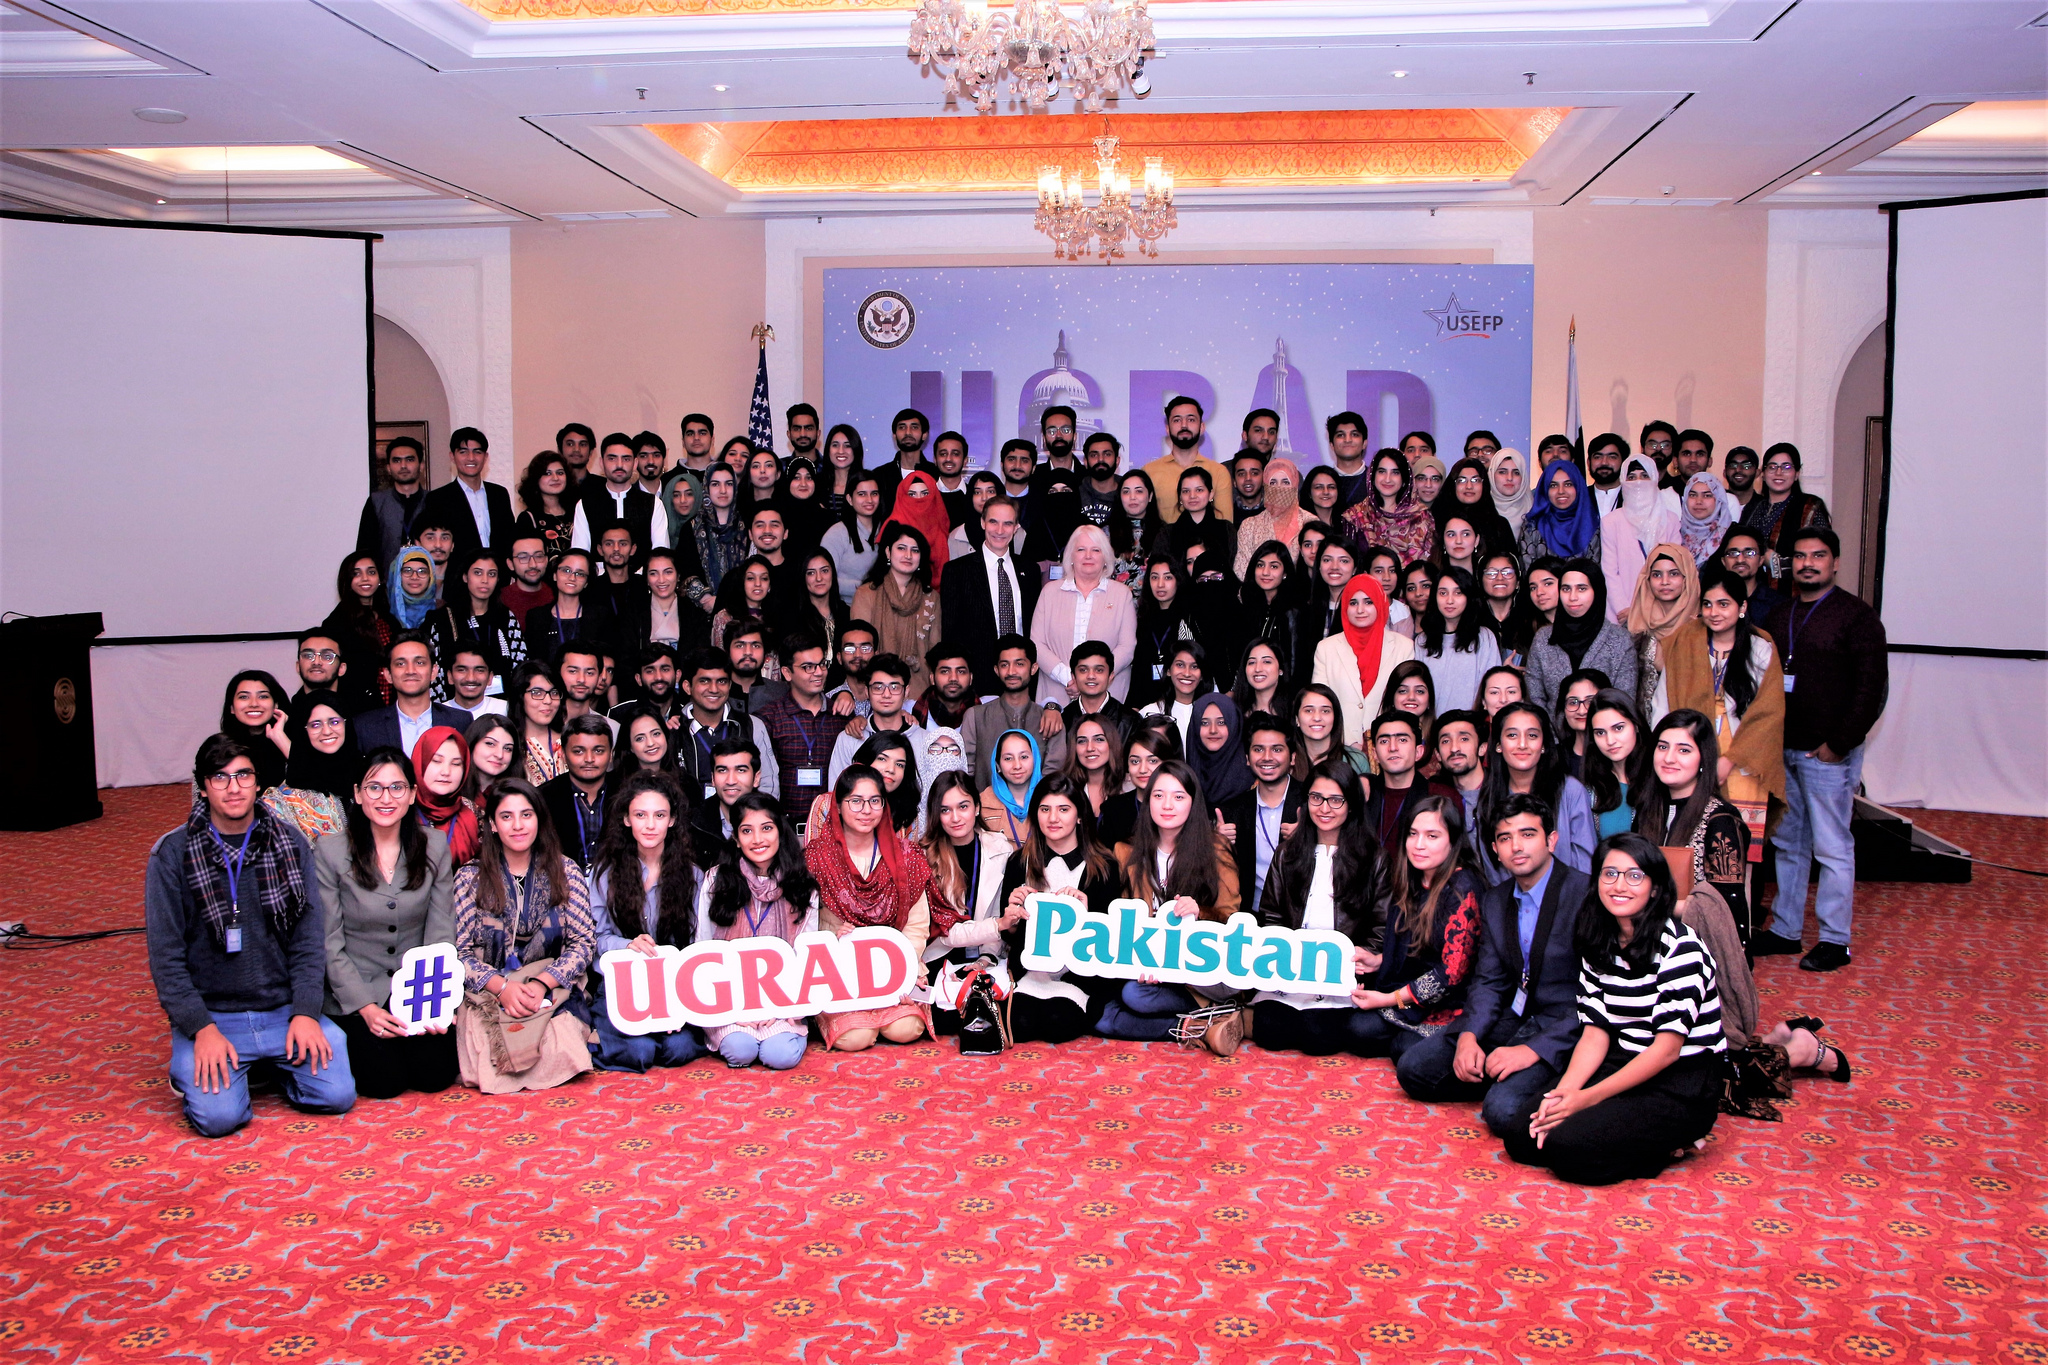 Over 135 Pakistani undergraduate students, selected to participate in the U.S. Government-funded Global Undergraduate Exchange Program (Global UGRAD), attended the two-day PDO ceremony in Islamabad